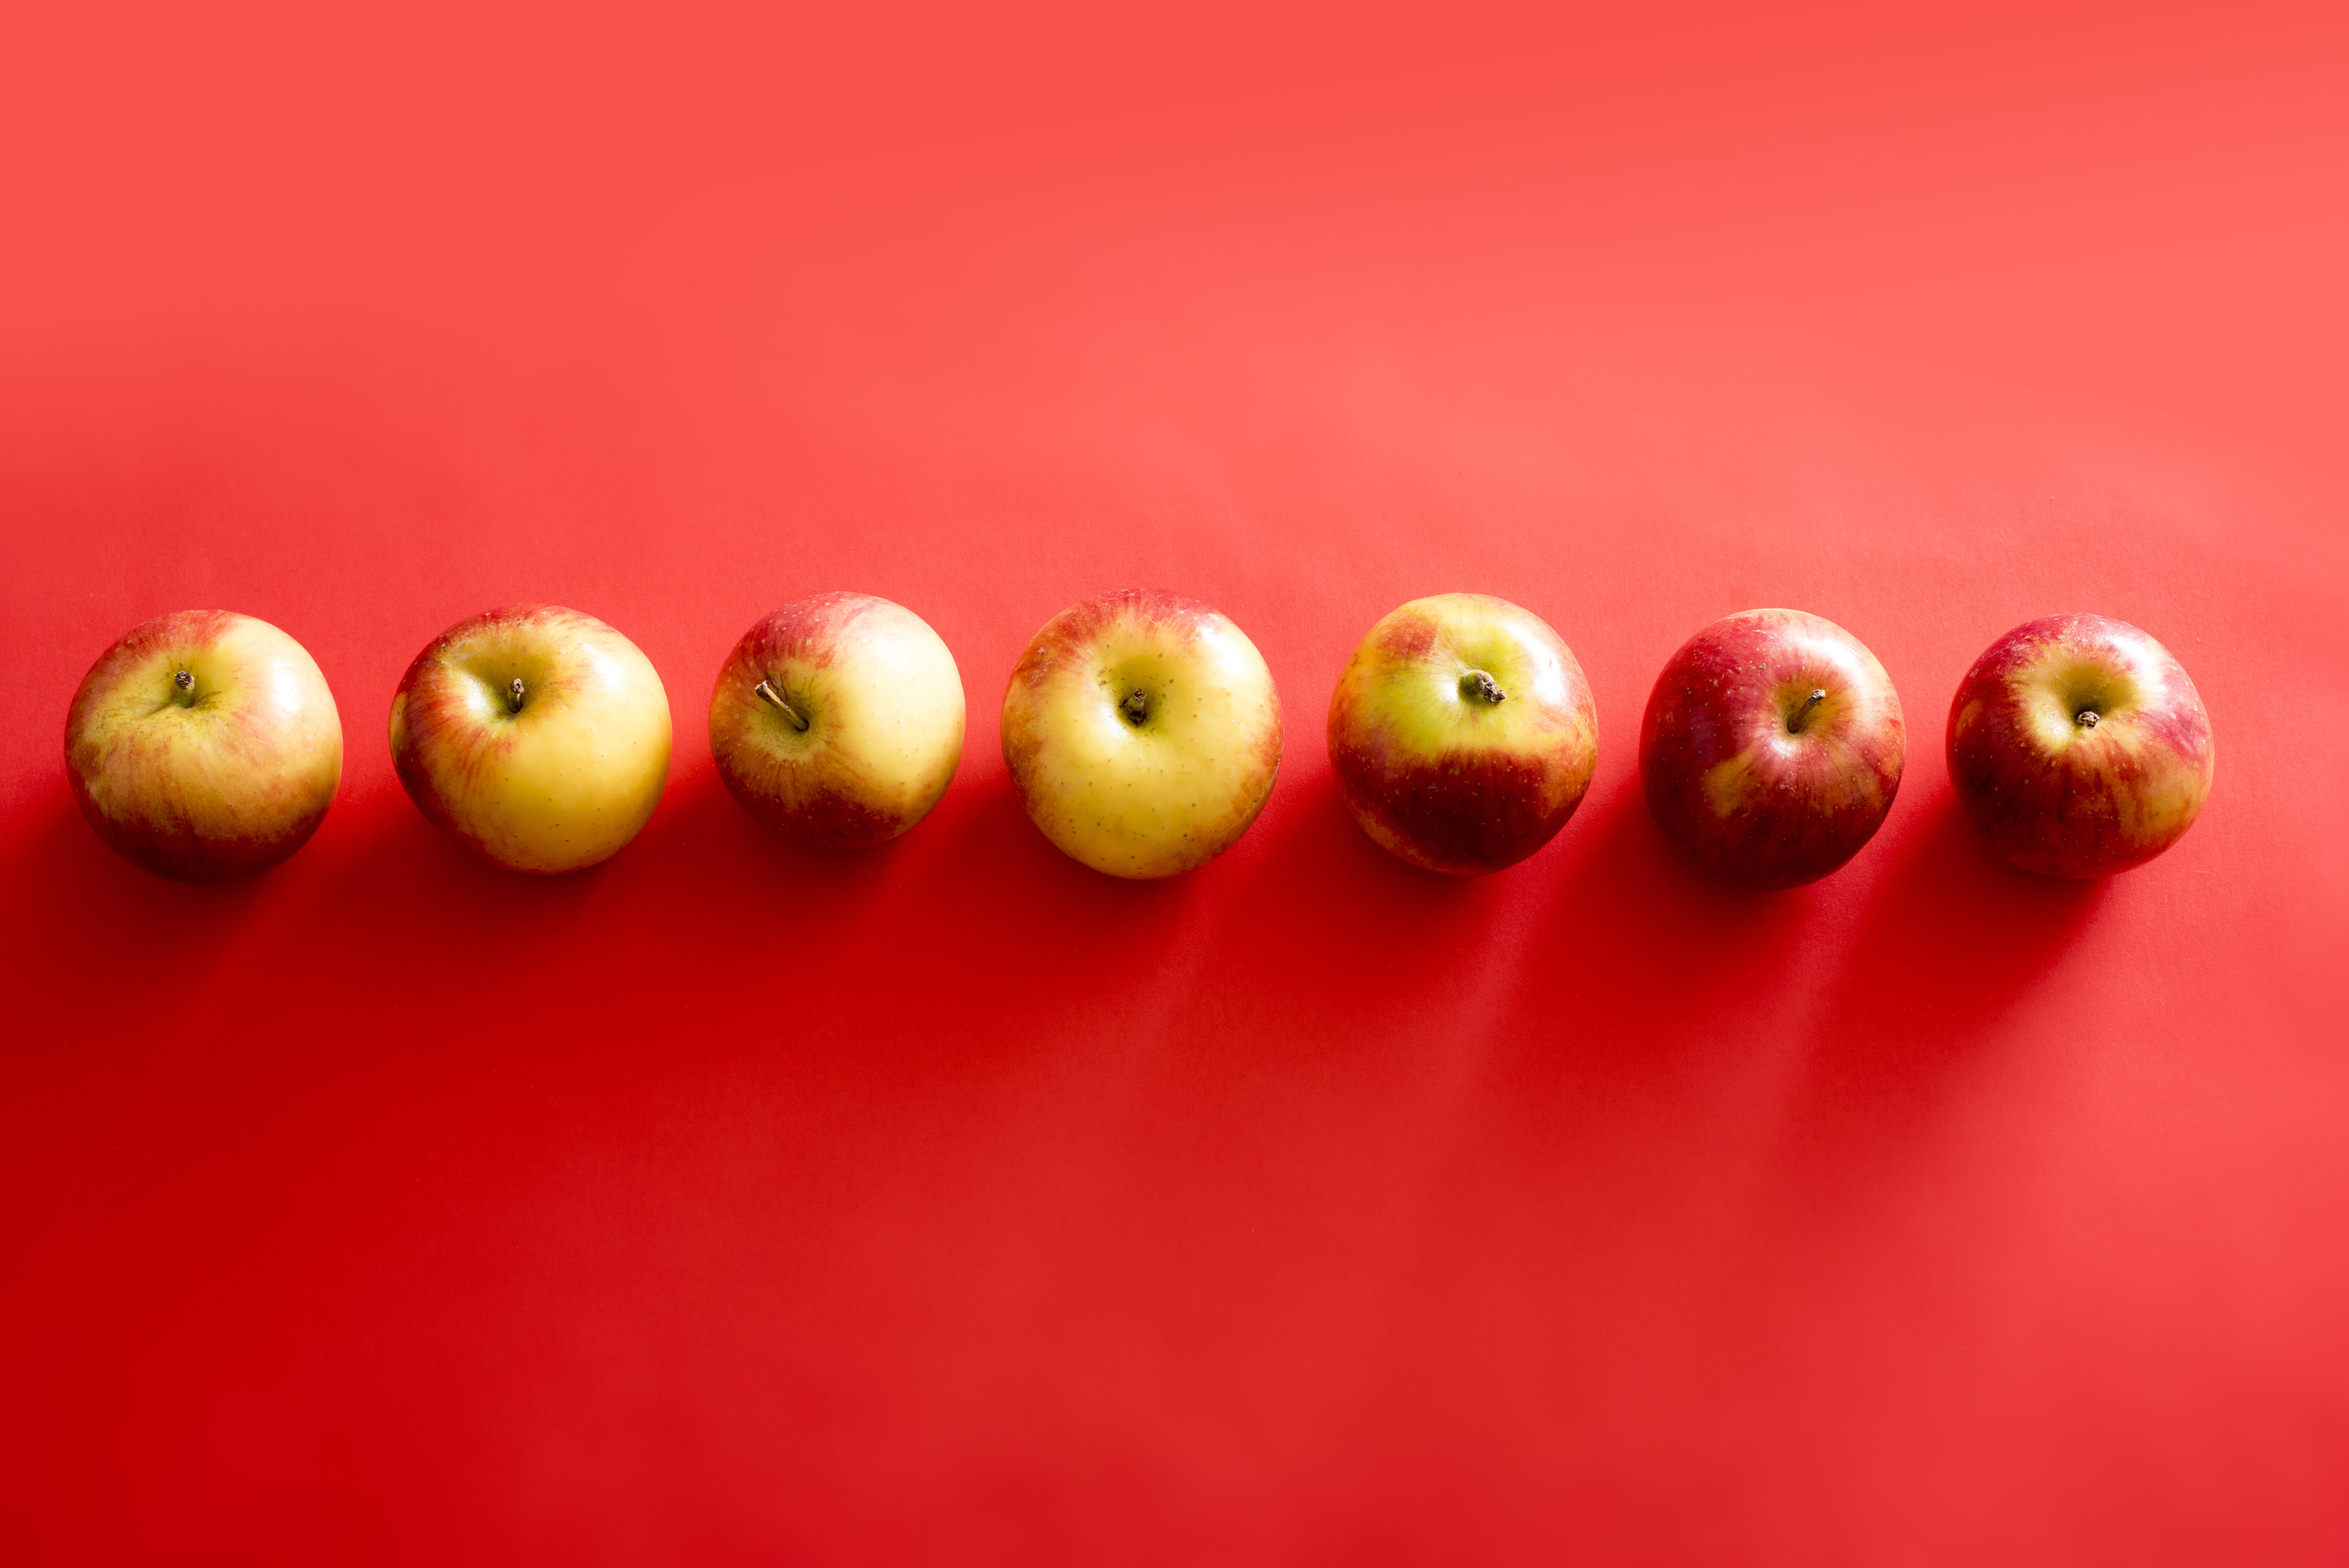 Seven apples seen from above arranged in line against red background